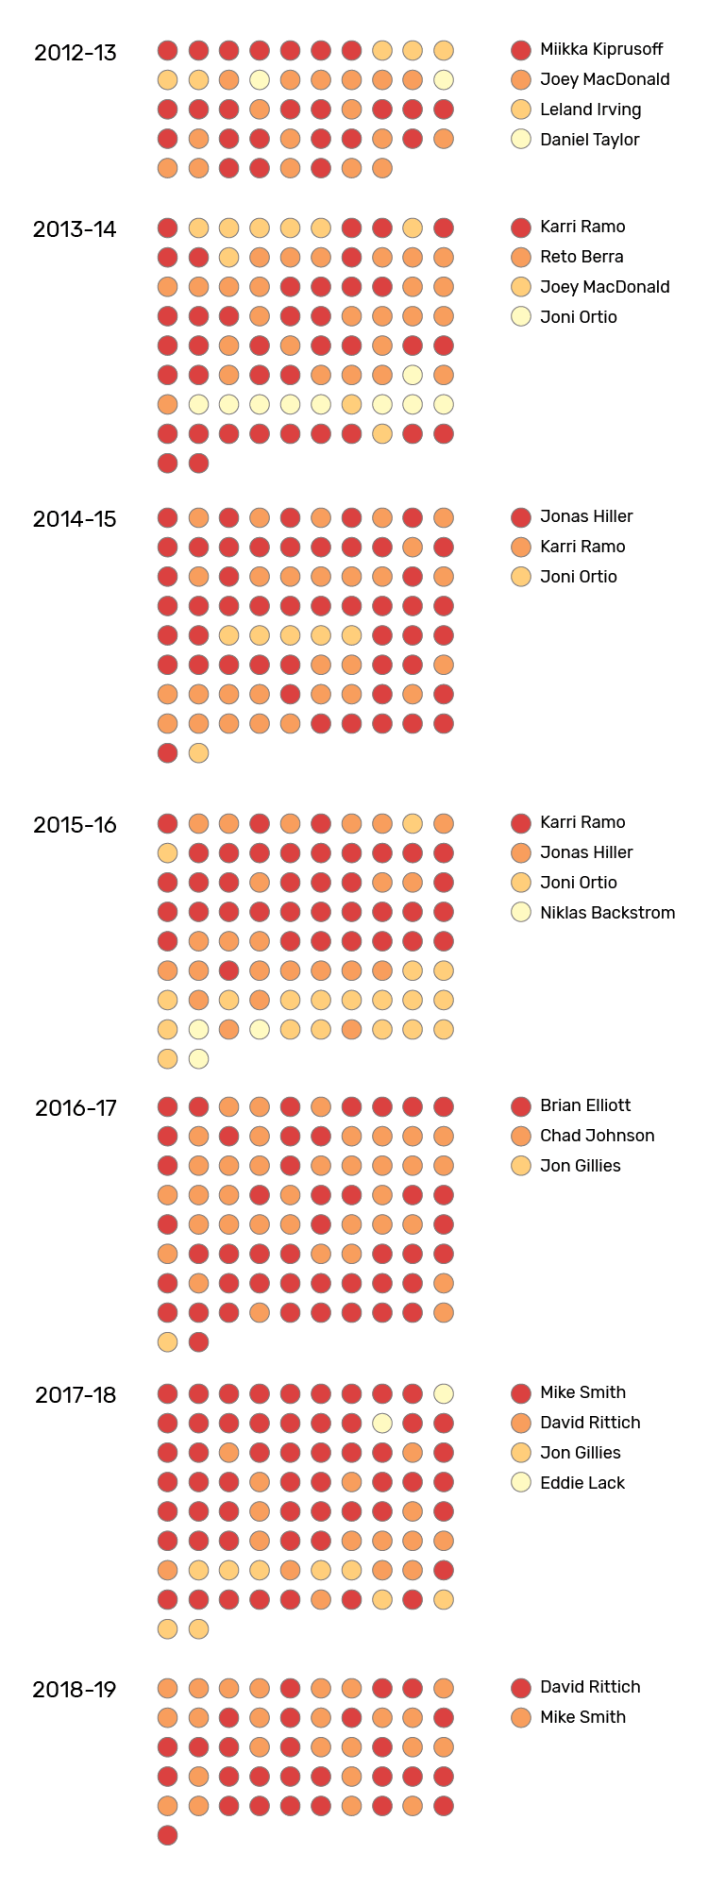 Games started by Calgary Flames goaltenders from 2012-13 through to 2018-19.